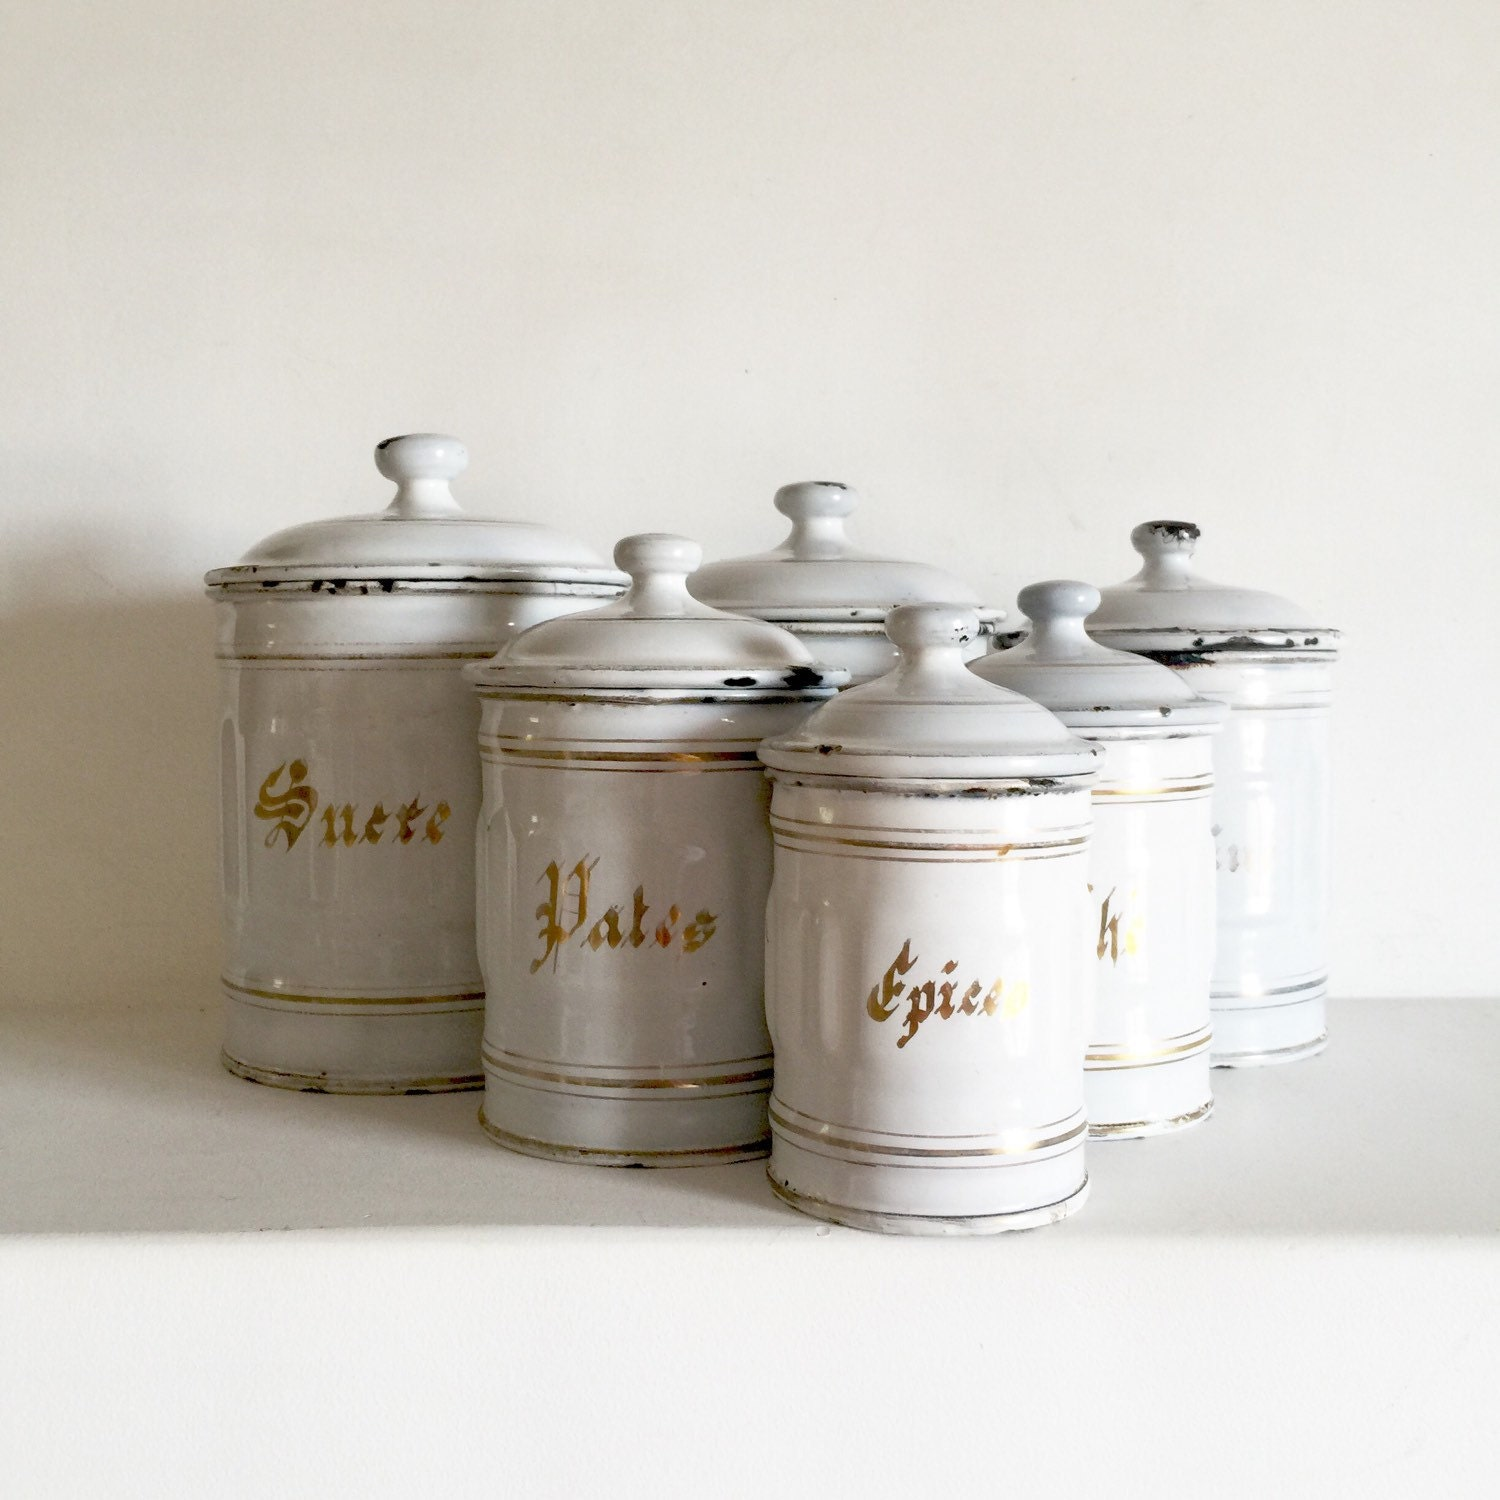 Vintage French Kitchen: French Antique Enamel Canisters French Kitchen Canisters